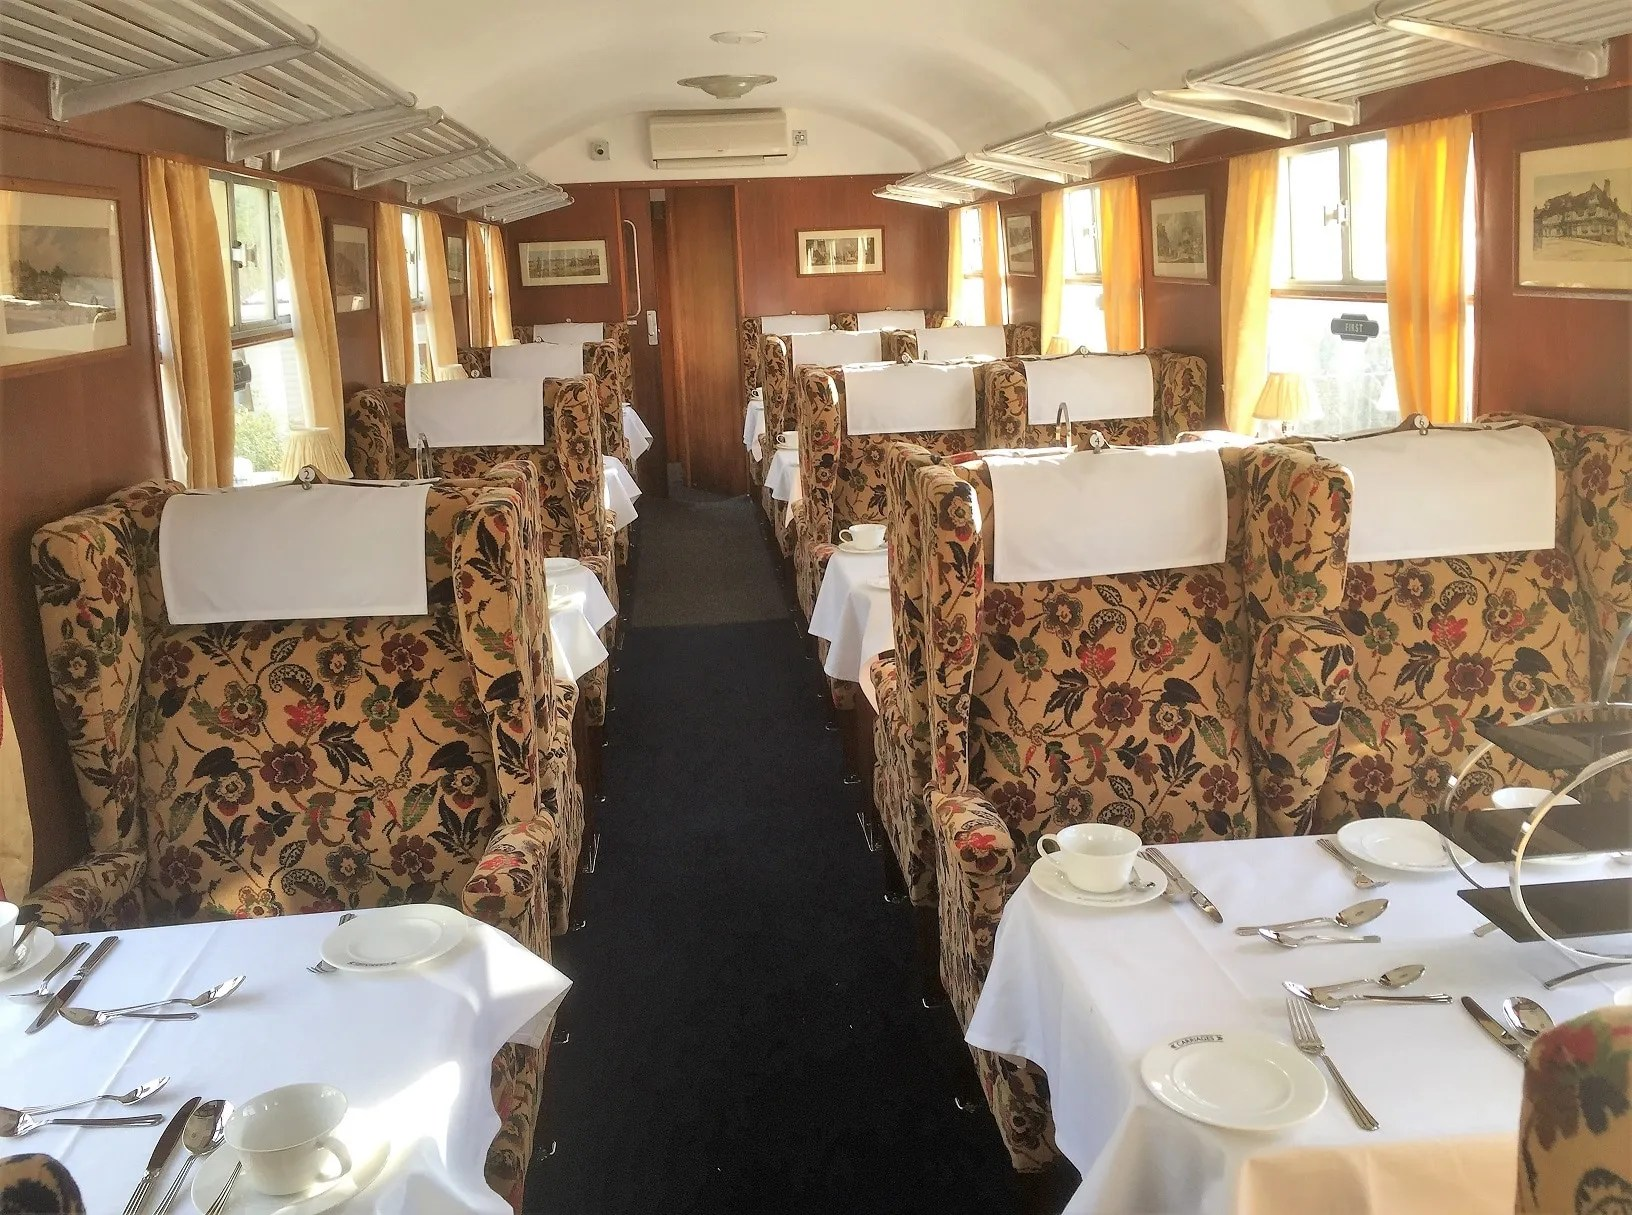 First Class Pullman carriage restaurant interior of FO S3065 Louis